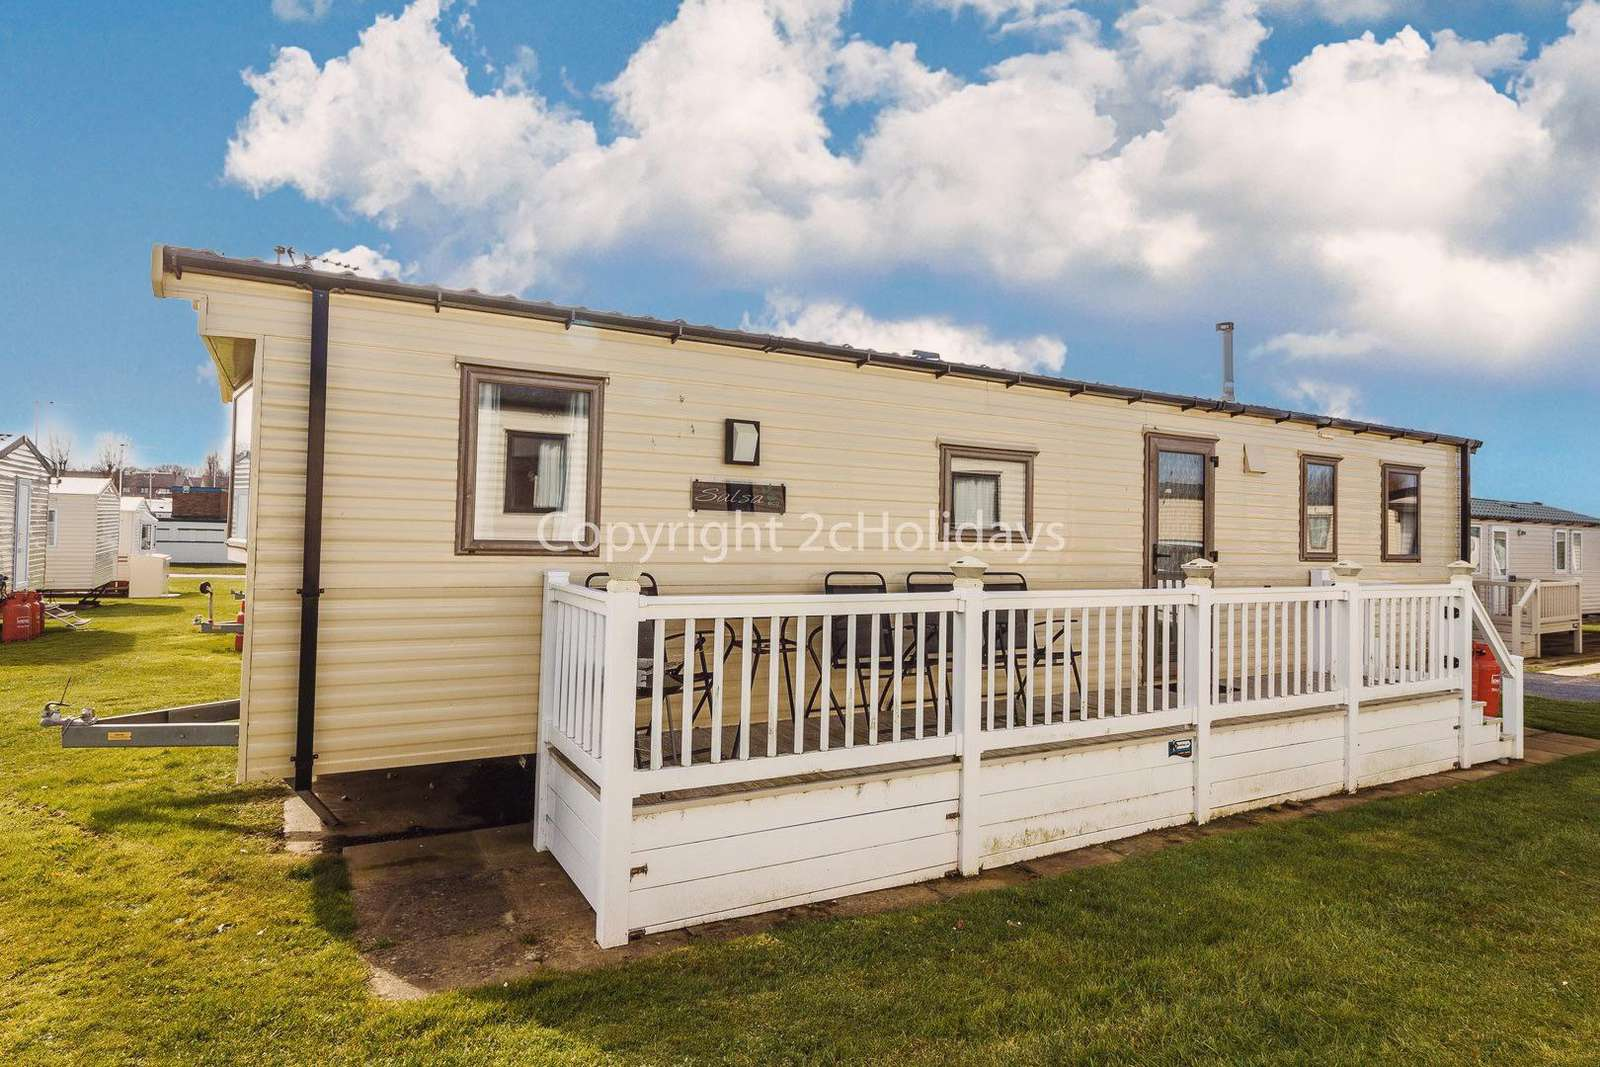 Caravan for hire at Haven hopton holiday park.